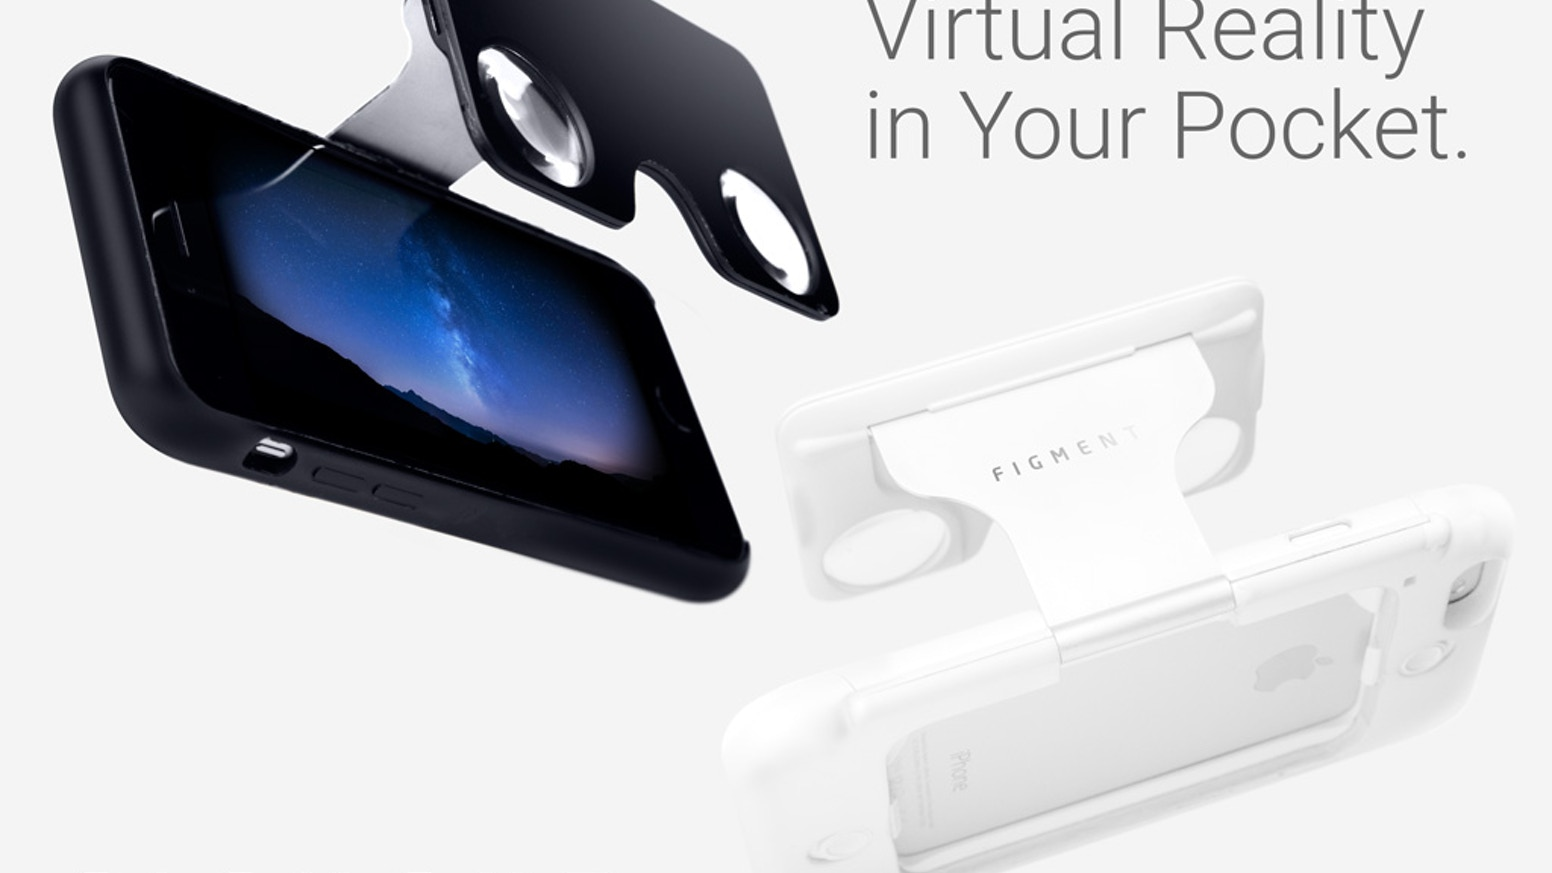 Figment Vr Virtual Reality Phonecase By Quantum Bakery Llc Rock Flash Light Tube Bumper Original Case Iphone 6 6s The Worlds First Viewer Built Into A Sleek Phone